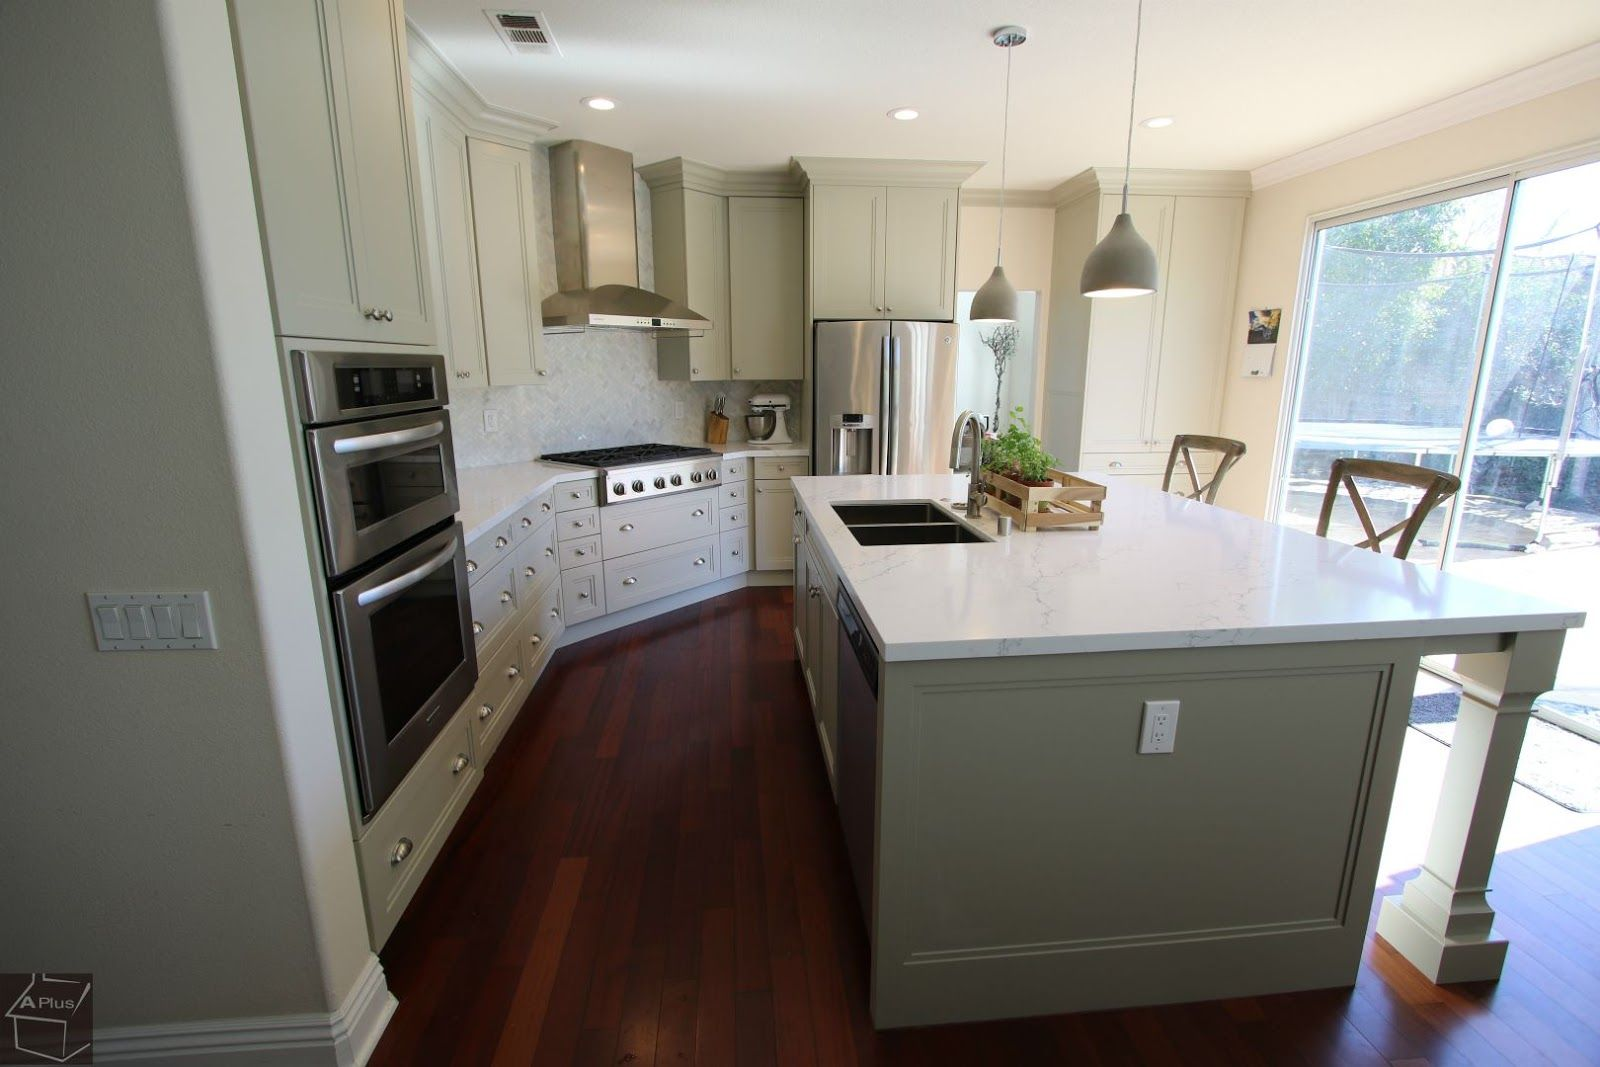 Transitional Design Build #kitchens #remodel In Tustin Orange Gorgeous Contemporary Style Kitchen Cabinets Decorating Inspiration